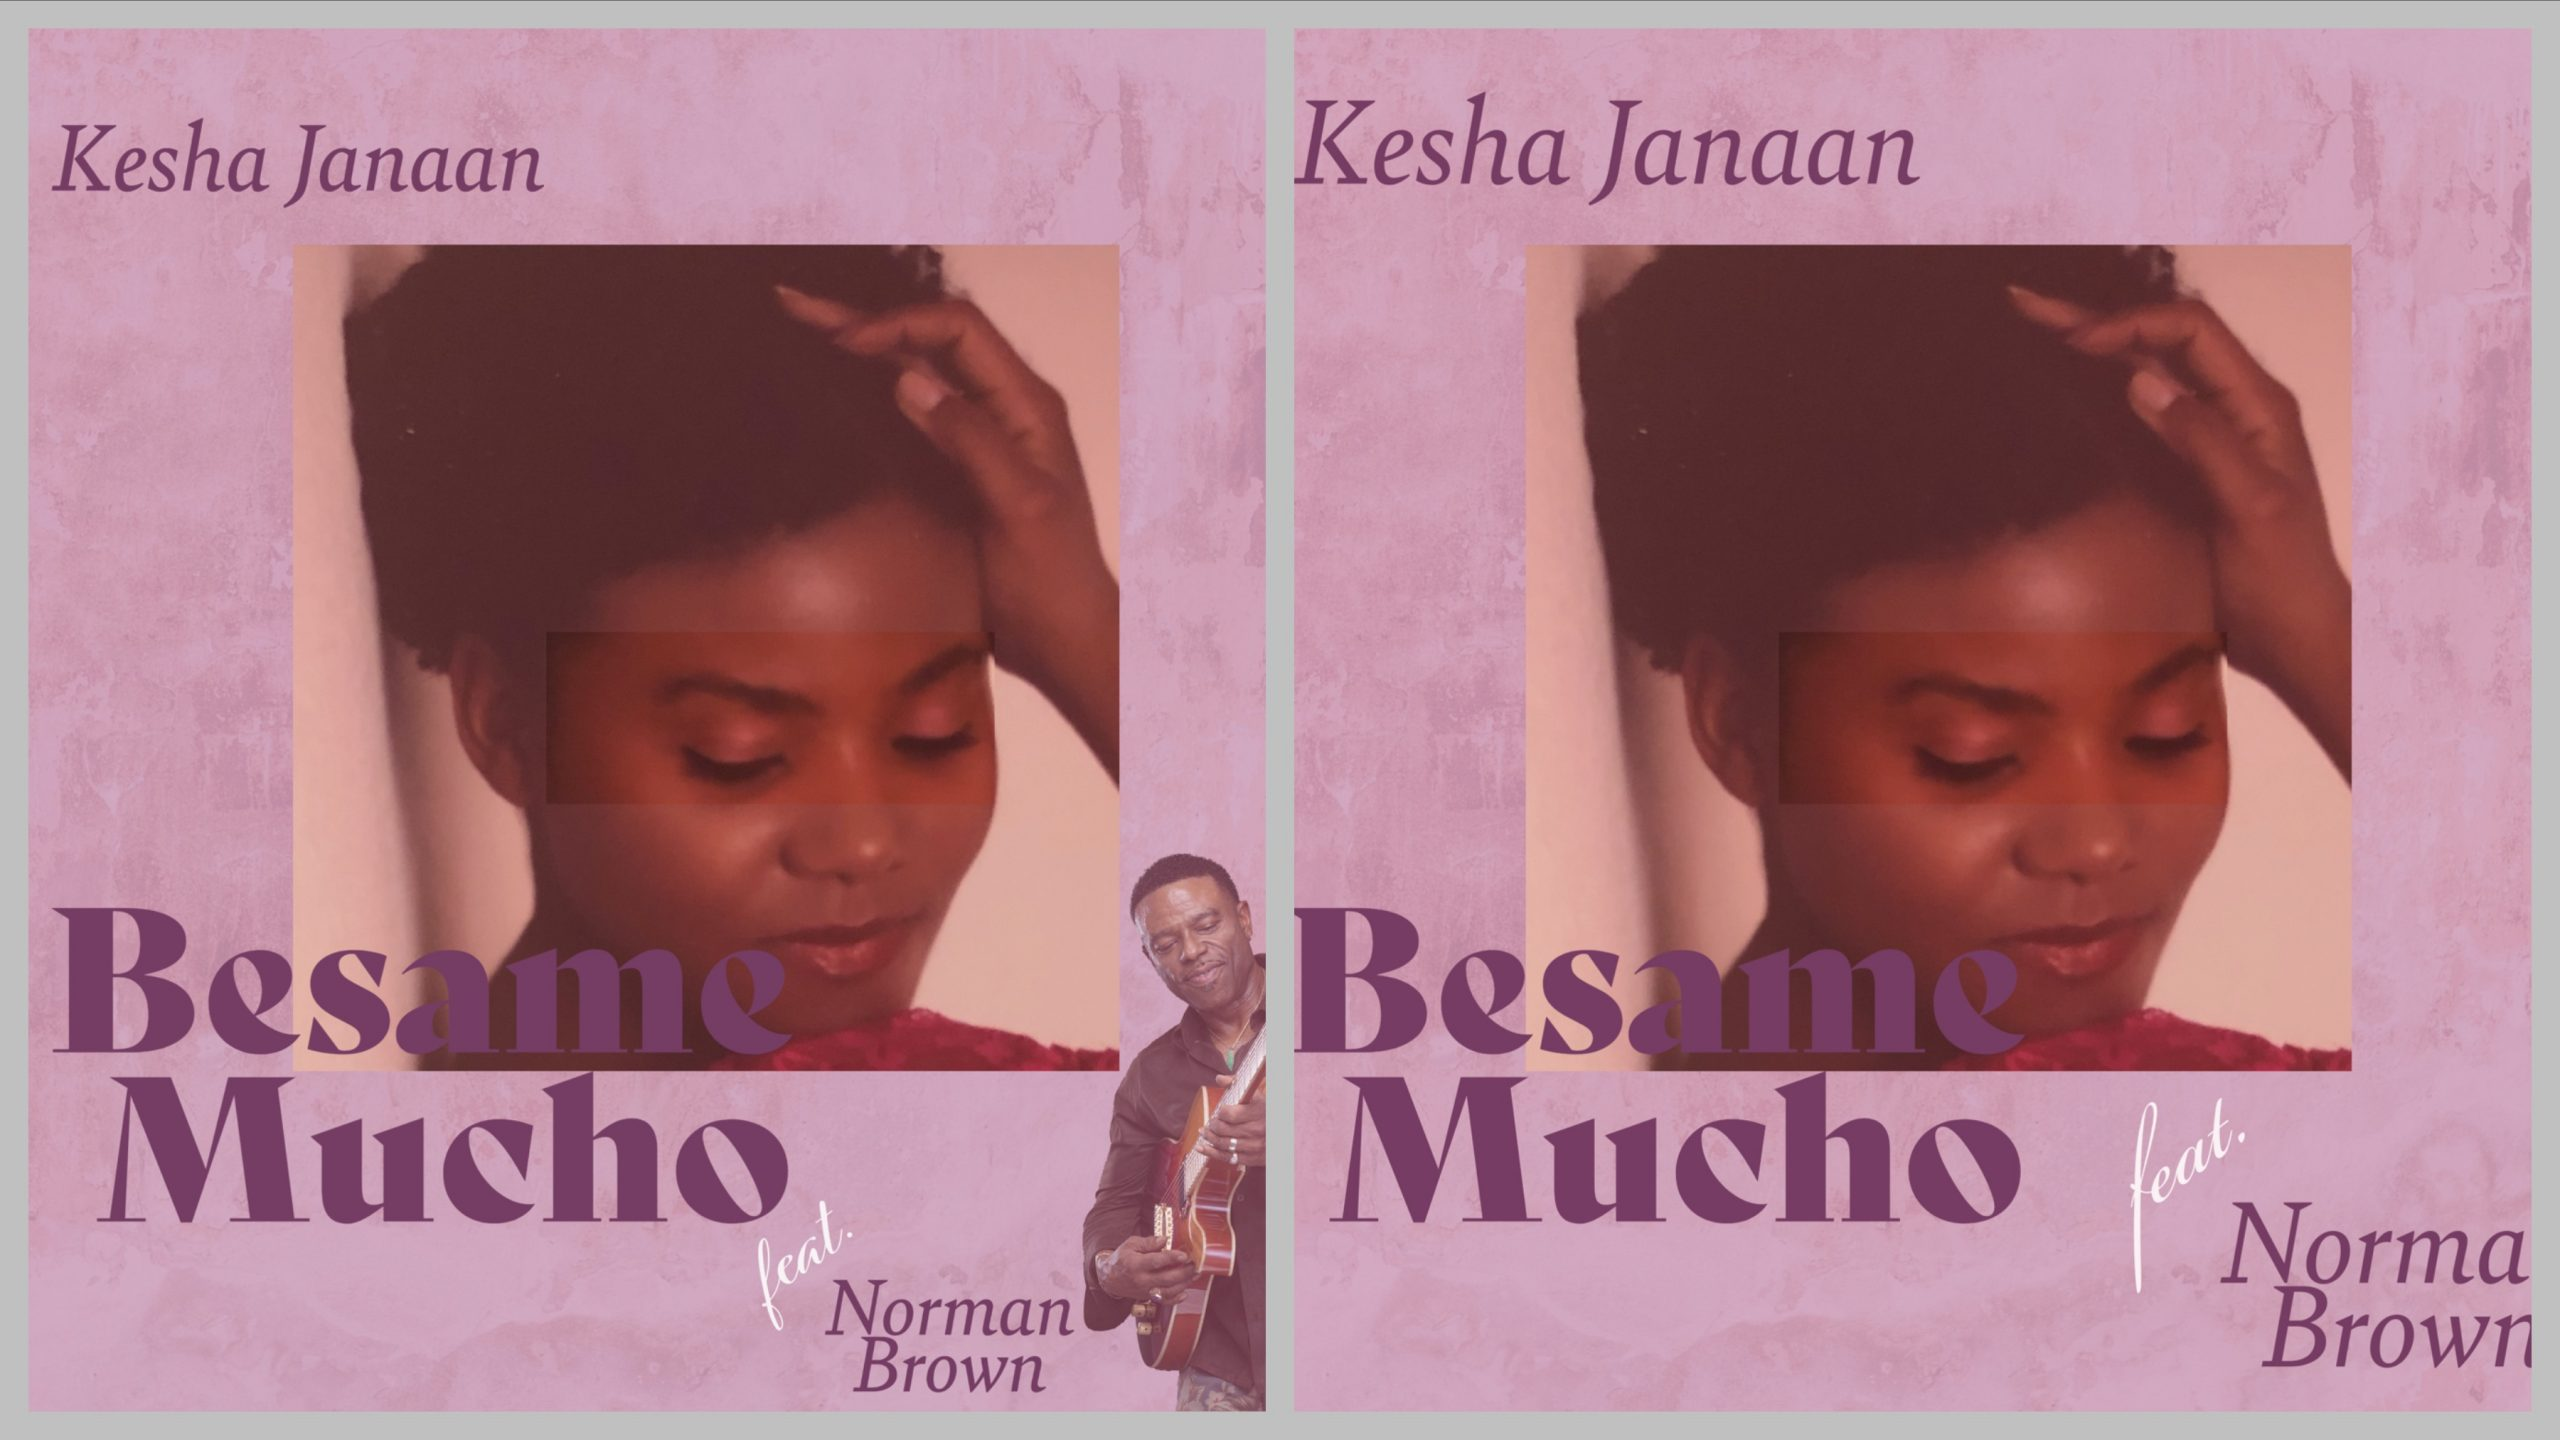 Kesha Janaan adds her own style and flavour to the latin, jazz classic 'Besame Mucho'